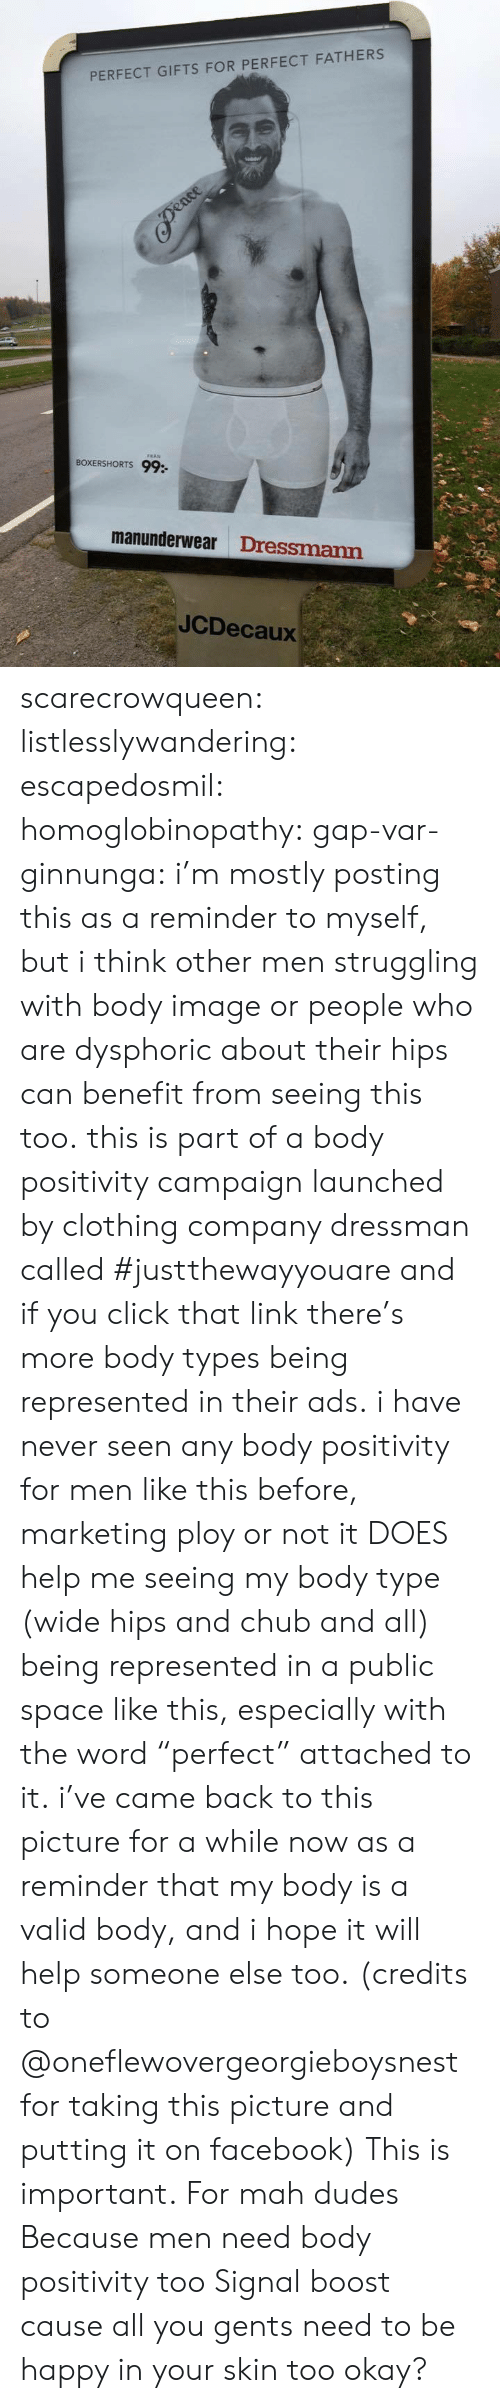 """Body Type: PERFECT GIFTS FOR PERFECT FATHERS  BOXERSHORTS 99:  manunderwear Dressmann  JCDecaux scarecrowqueen:  listlesslywandering:  escapedosmil:  homoglobinopathy:  gap-var-ginnunga:  i'm mostly posting this as a reminder to myself, but i think other men struggling with body image or people who are dysphoric about their hips can benefit from seeing this too. this is part of a body positivity campaign launched by clothing company dressman called #justthewayyouareand if you click that link there's more body types being represented in their ads. i have never seen any body positivity for men like this before, marketing ploy or not it DOES help me seeing my body type (wide hips and chub and all) being represented in a public space like this, especially with the word""""perfect"""" attached to it. i've came back to this picture for a while now as a reminder that my body is a valid body, and i hope it will help someone else too. (credits to @oneflewovergeorgieboysnest for taking this picture and putting it on facebook)  This is important.  For mah dudes  Because men need body positivity too  Signal boost cause all you gents need to be happy in your skin too okay?"""